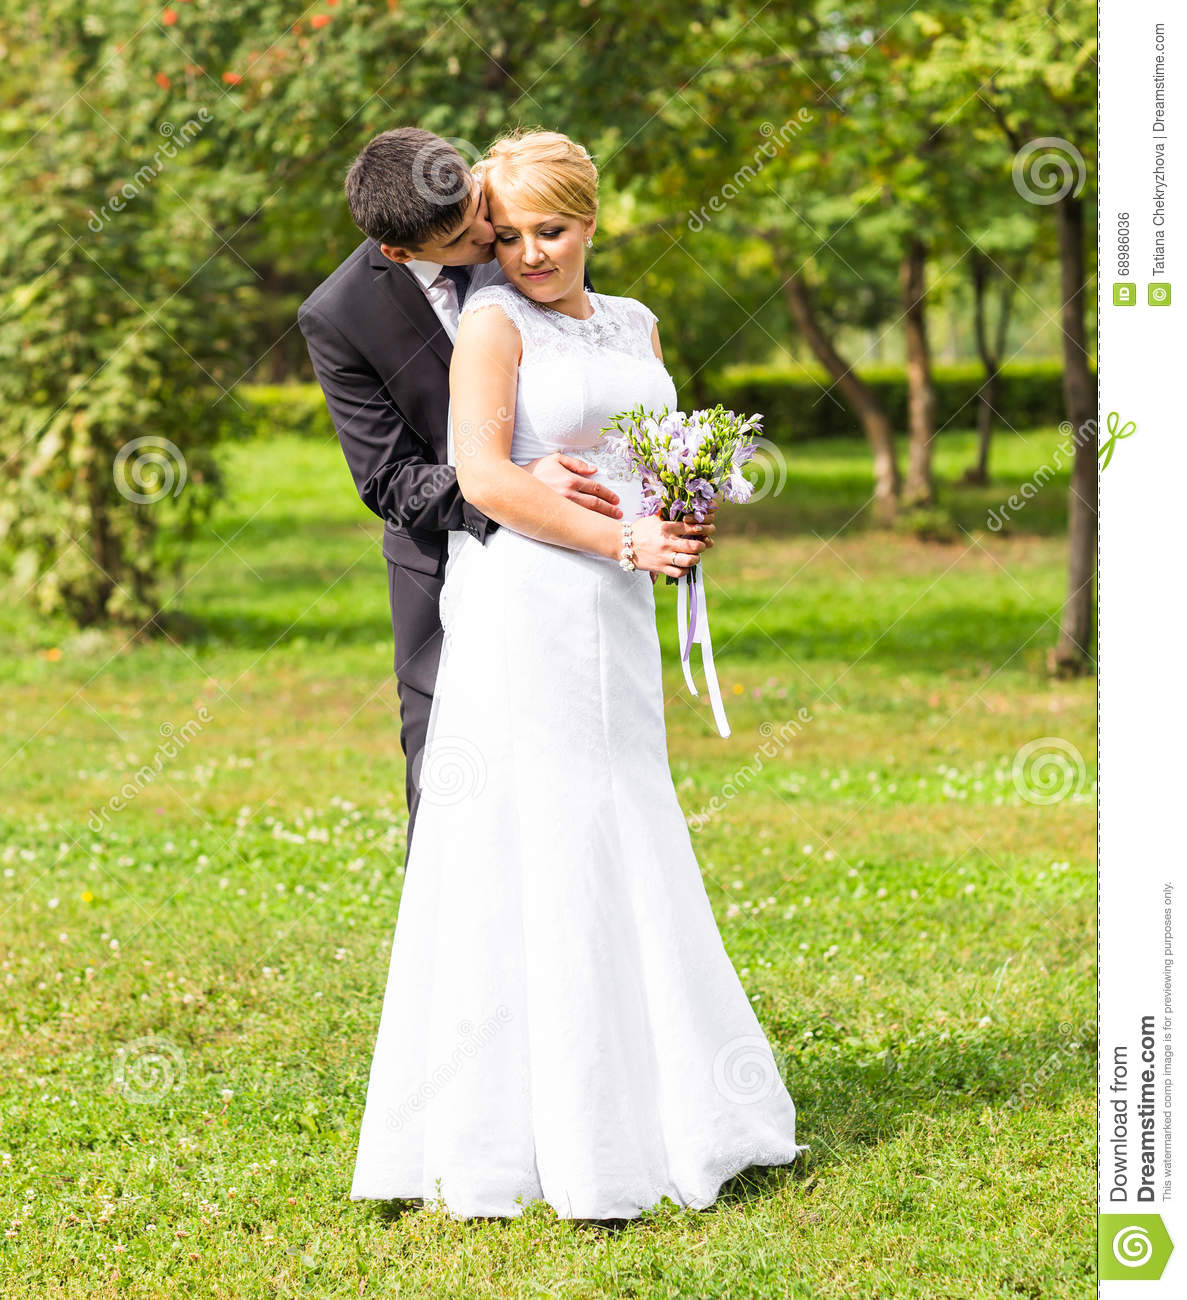 Beautiful wedding couple outdoors. They kiss and hug each other